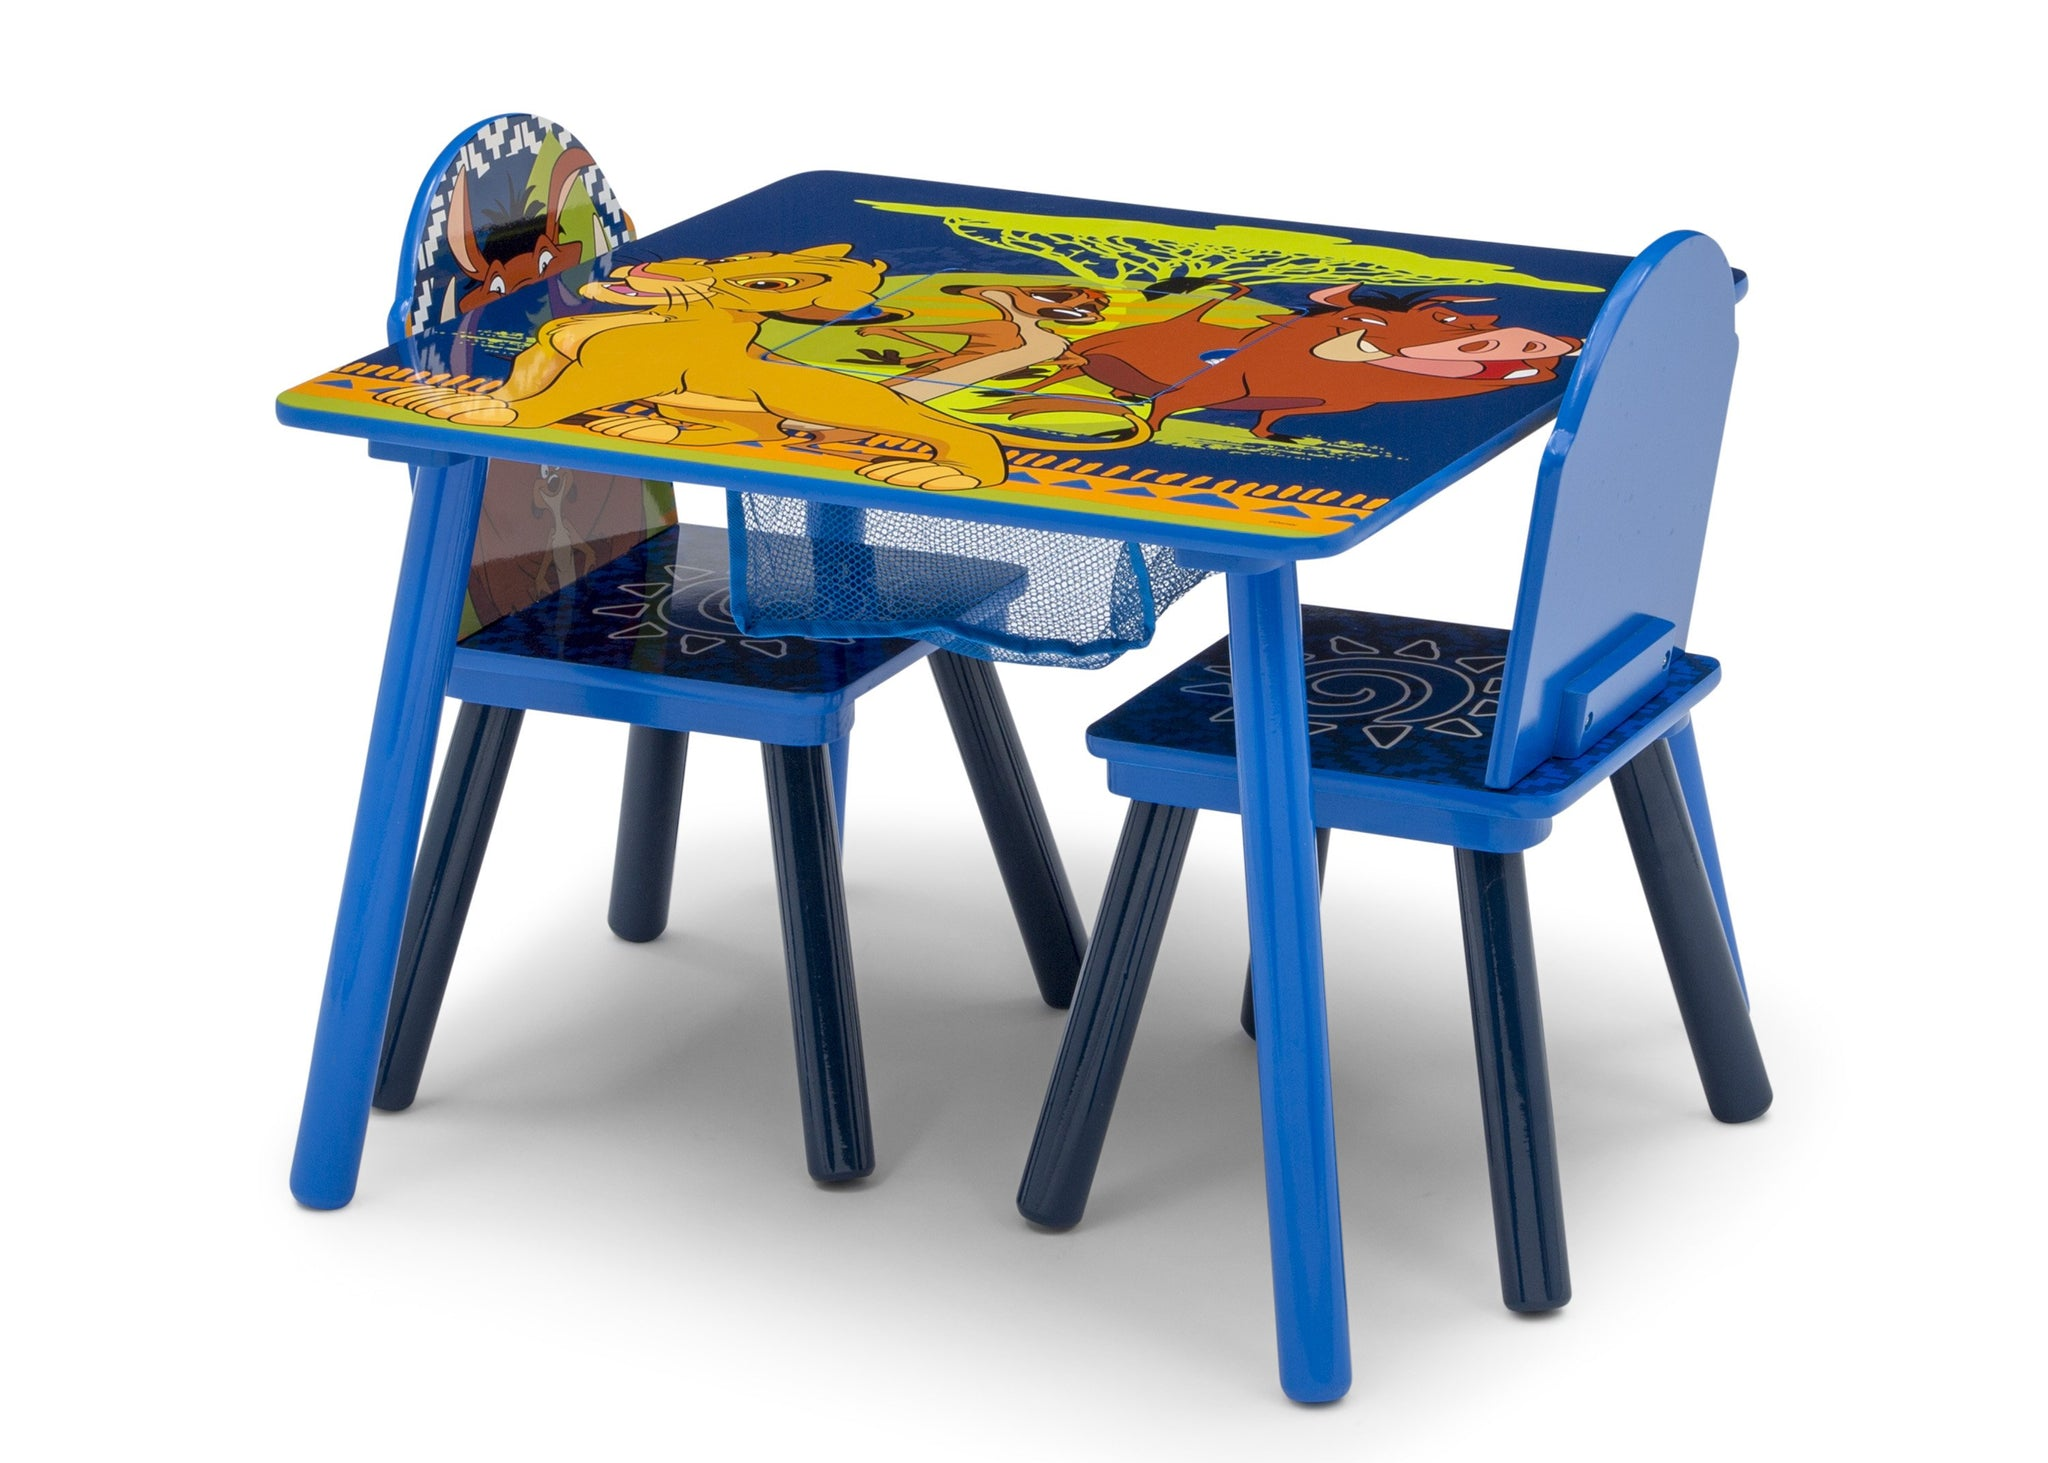 Delta Children The Lion King (1079) Table and Chair Set with Storage, Left Silo View with Chairs In